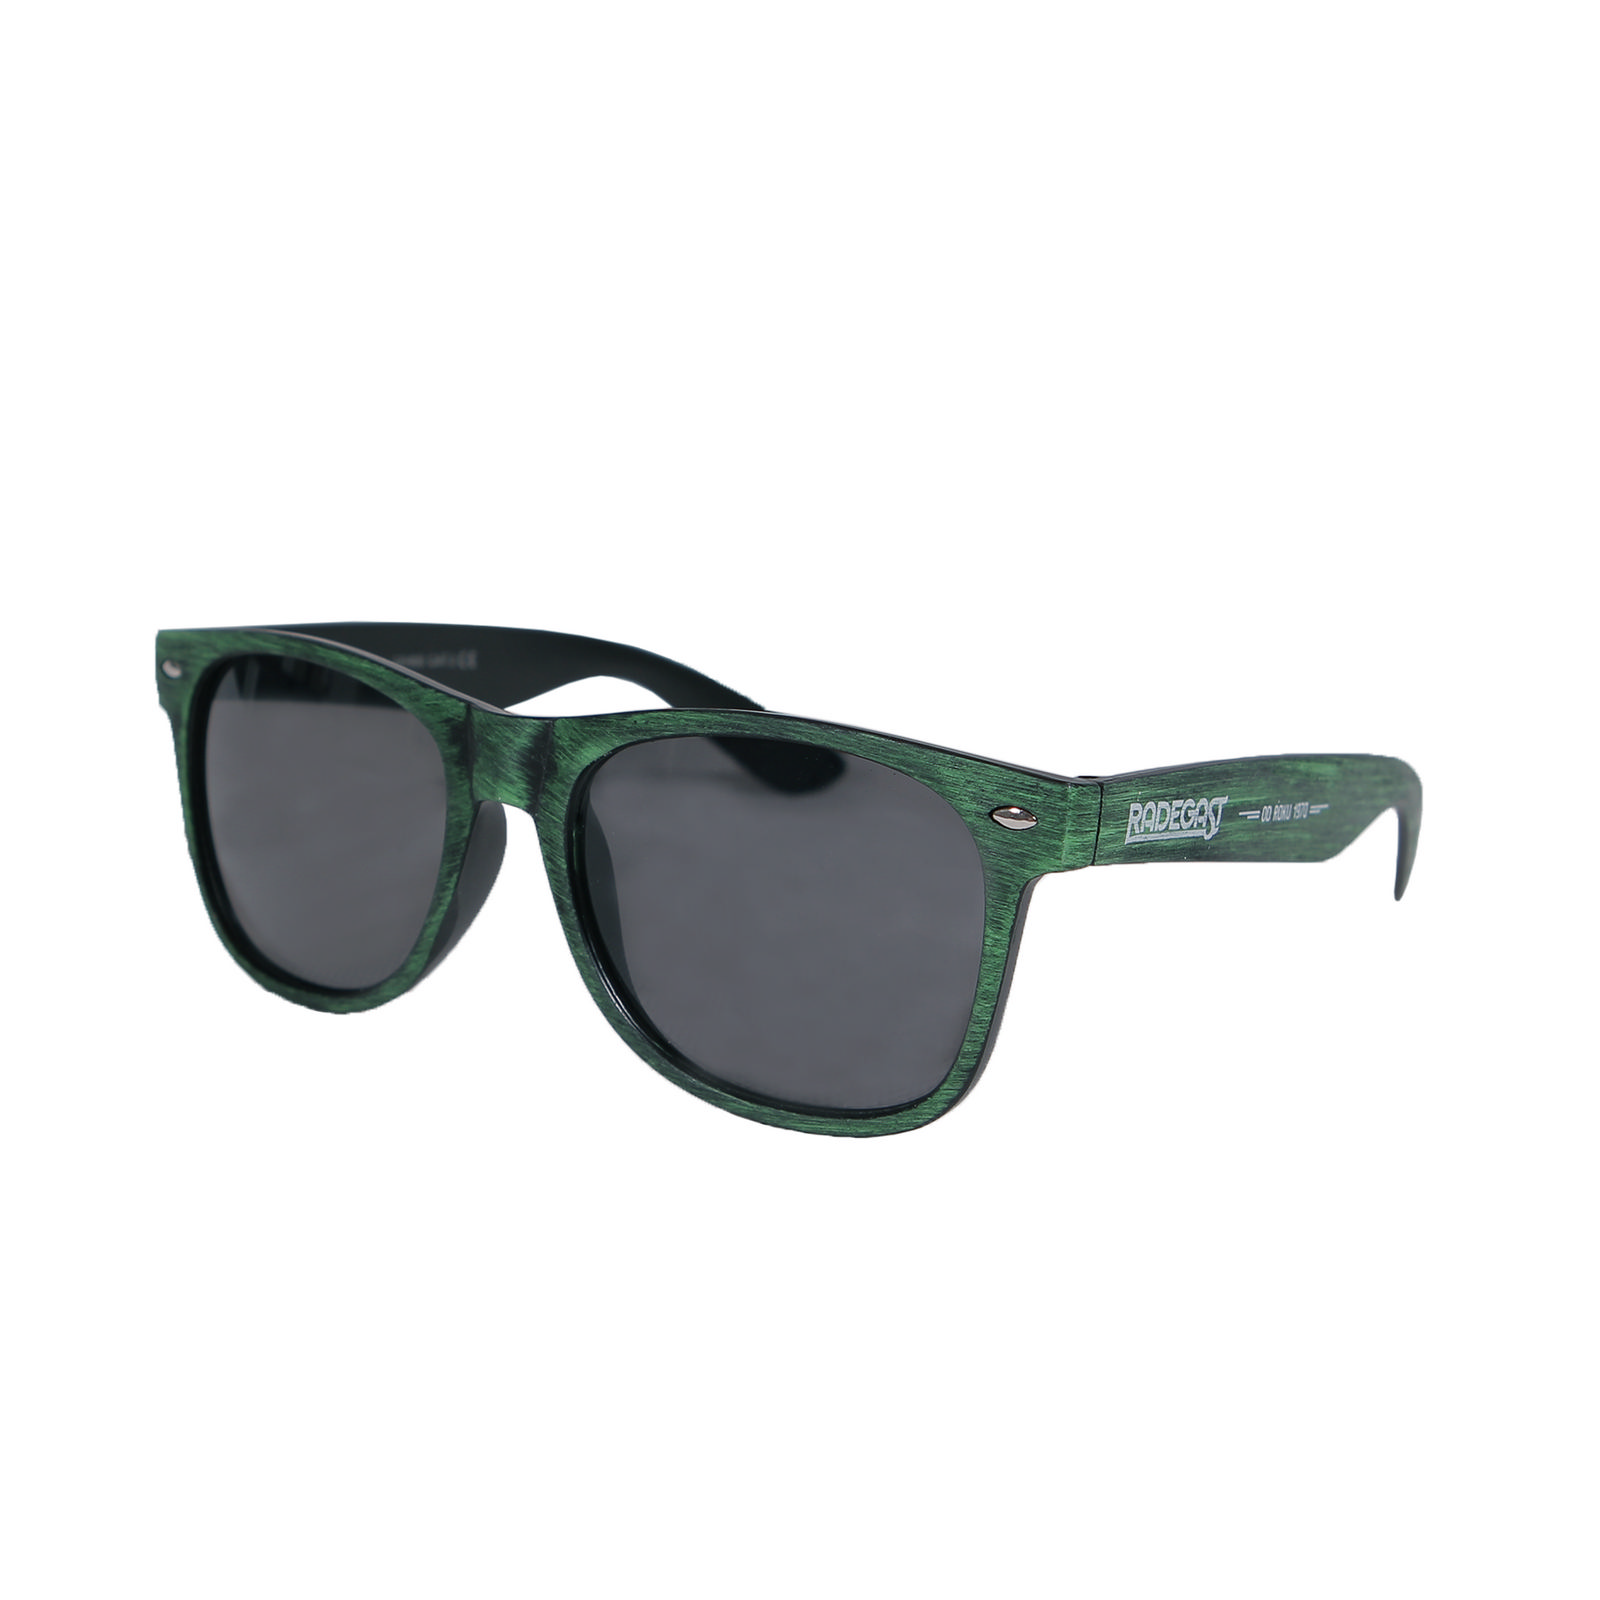 Radegast sunglasses